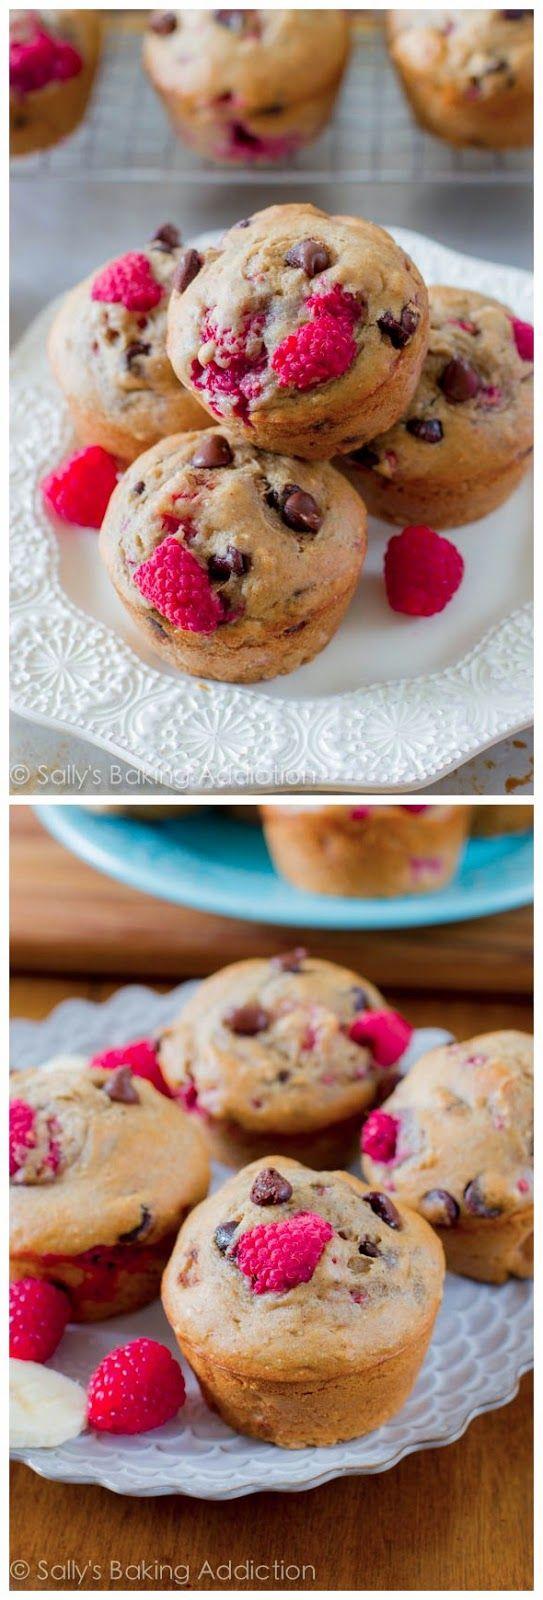 Skinny Raspberry Chocolate Chip Banana Muffins